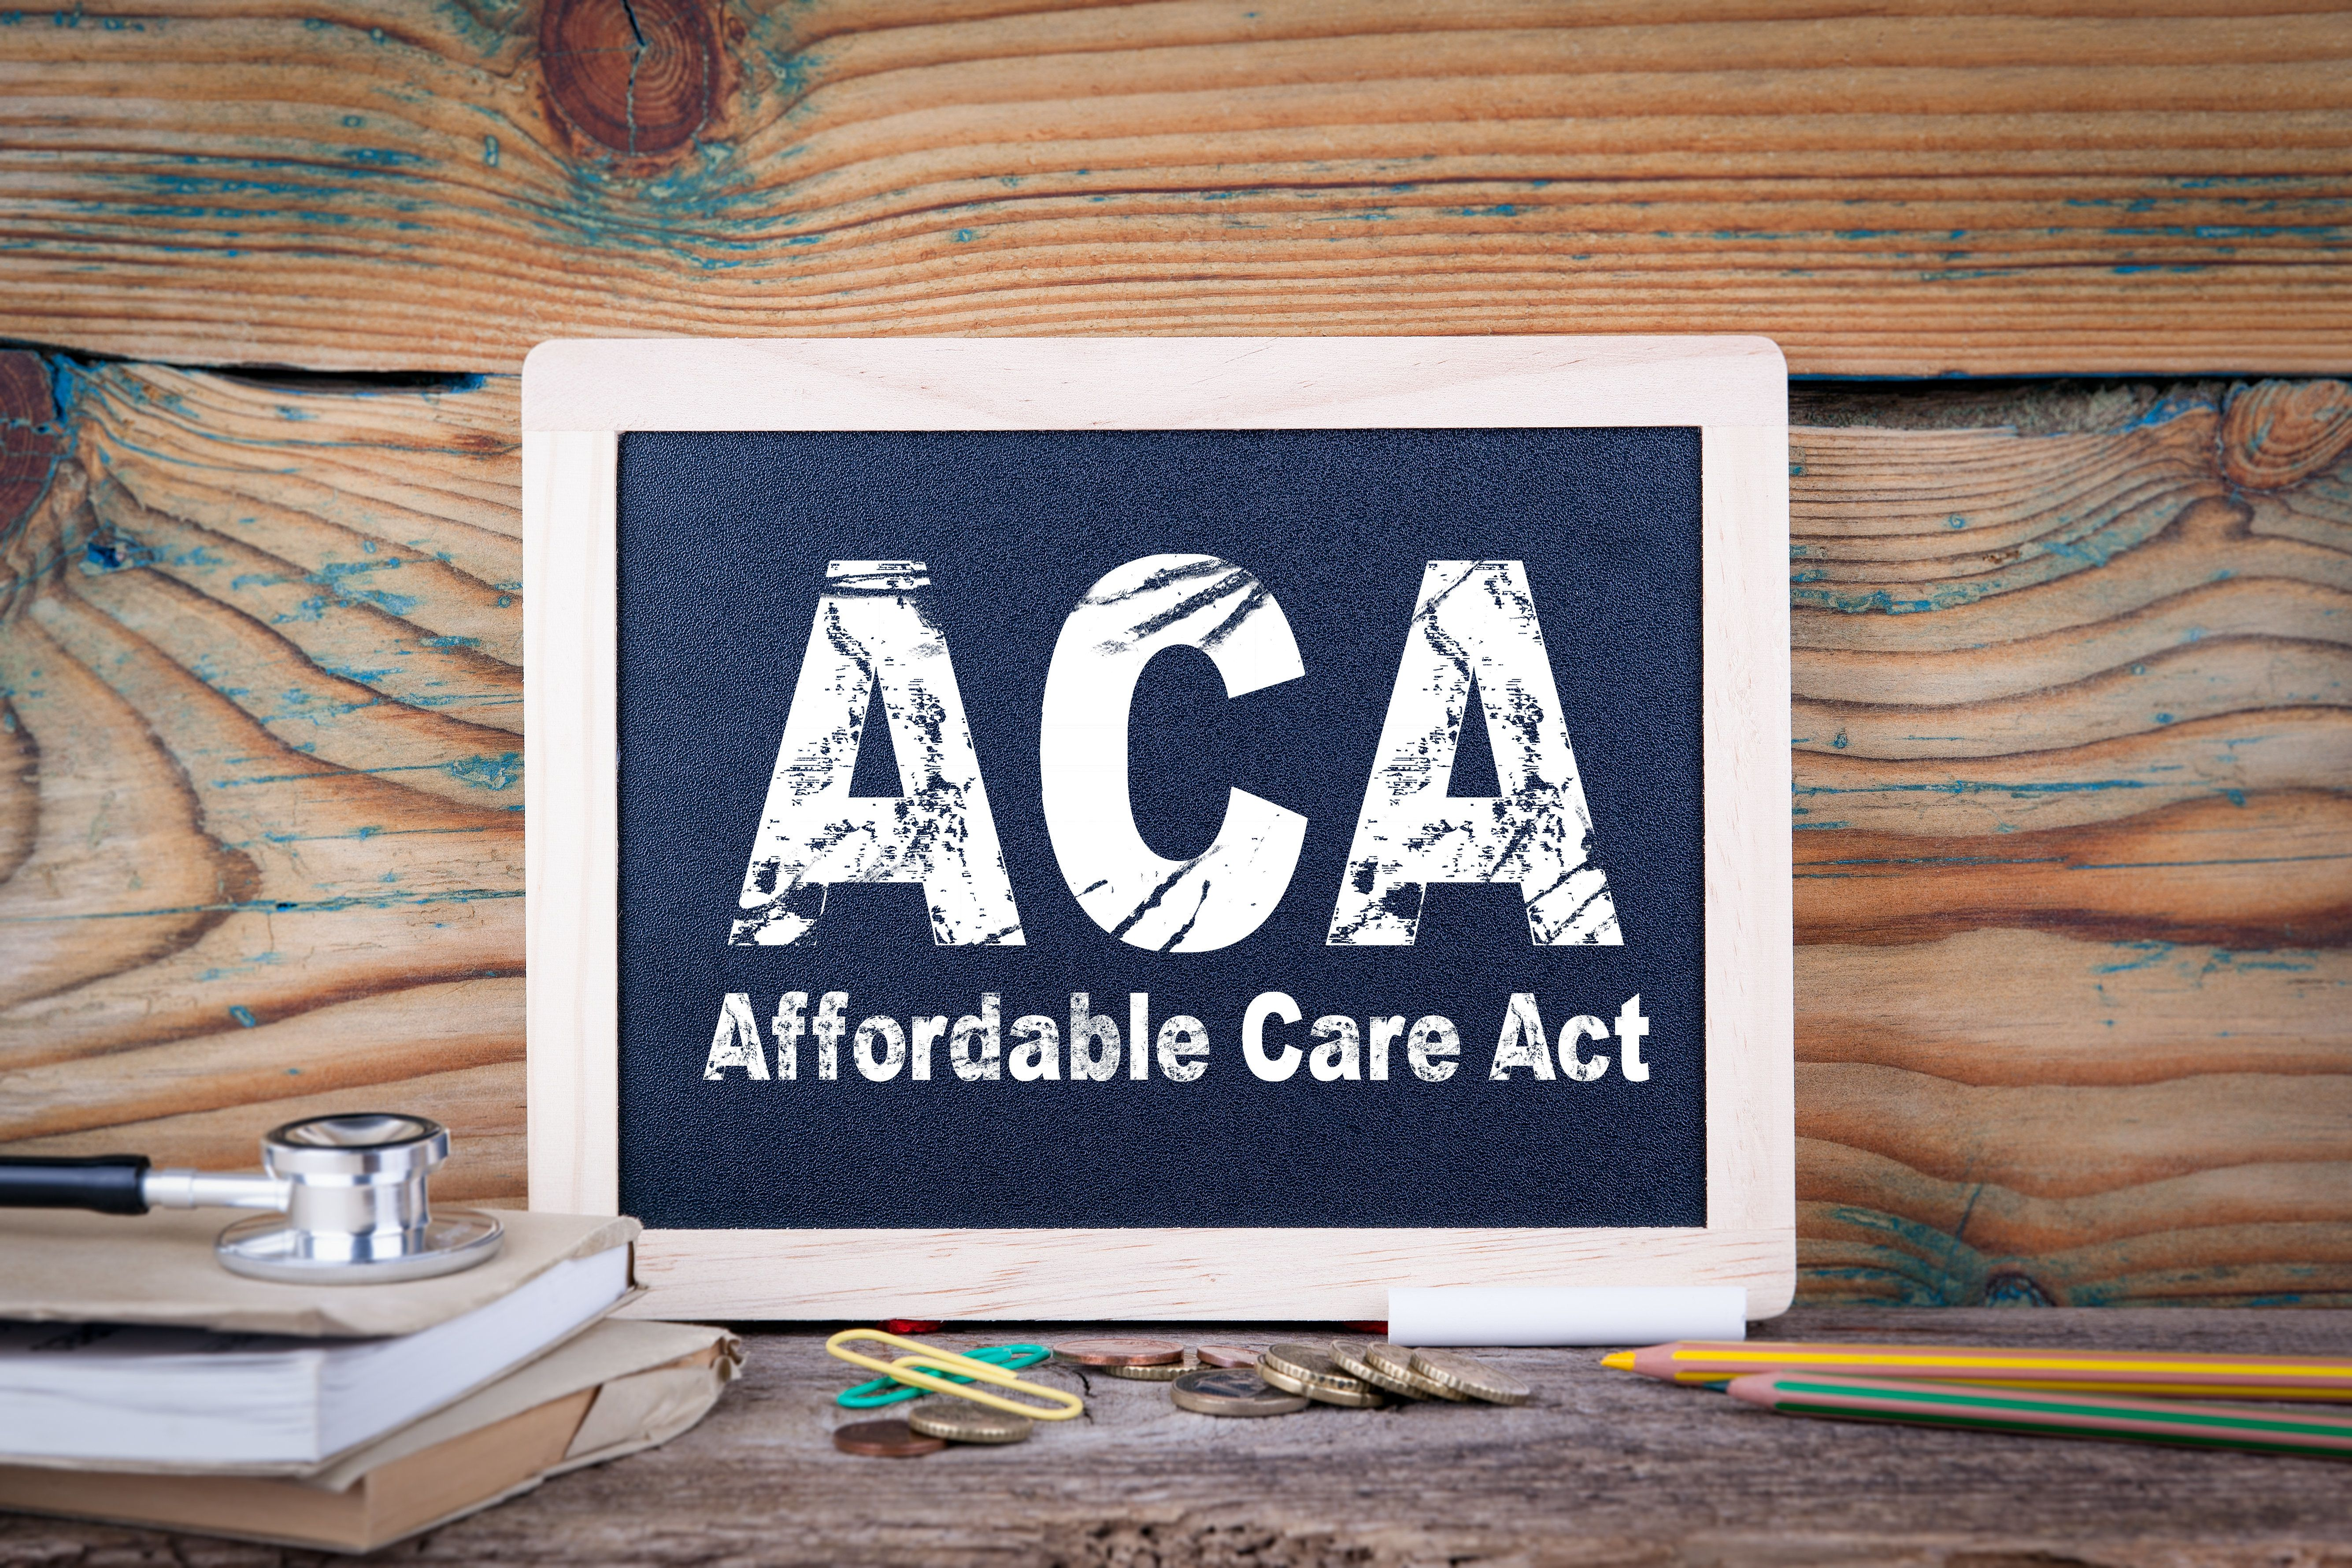 aca, affordable care act. Chalkboard on a wooden background